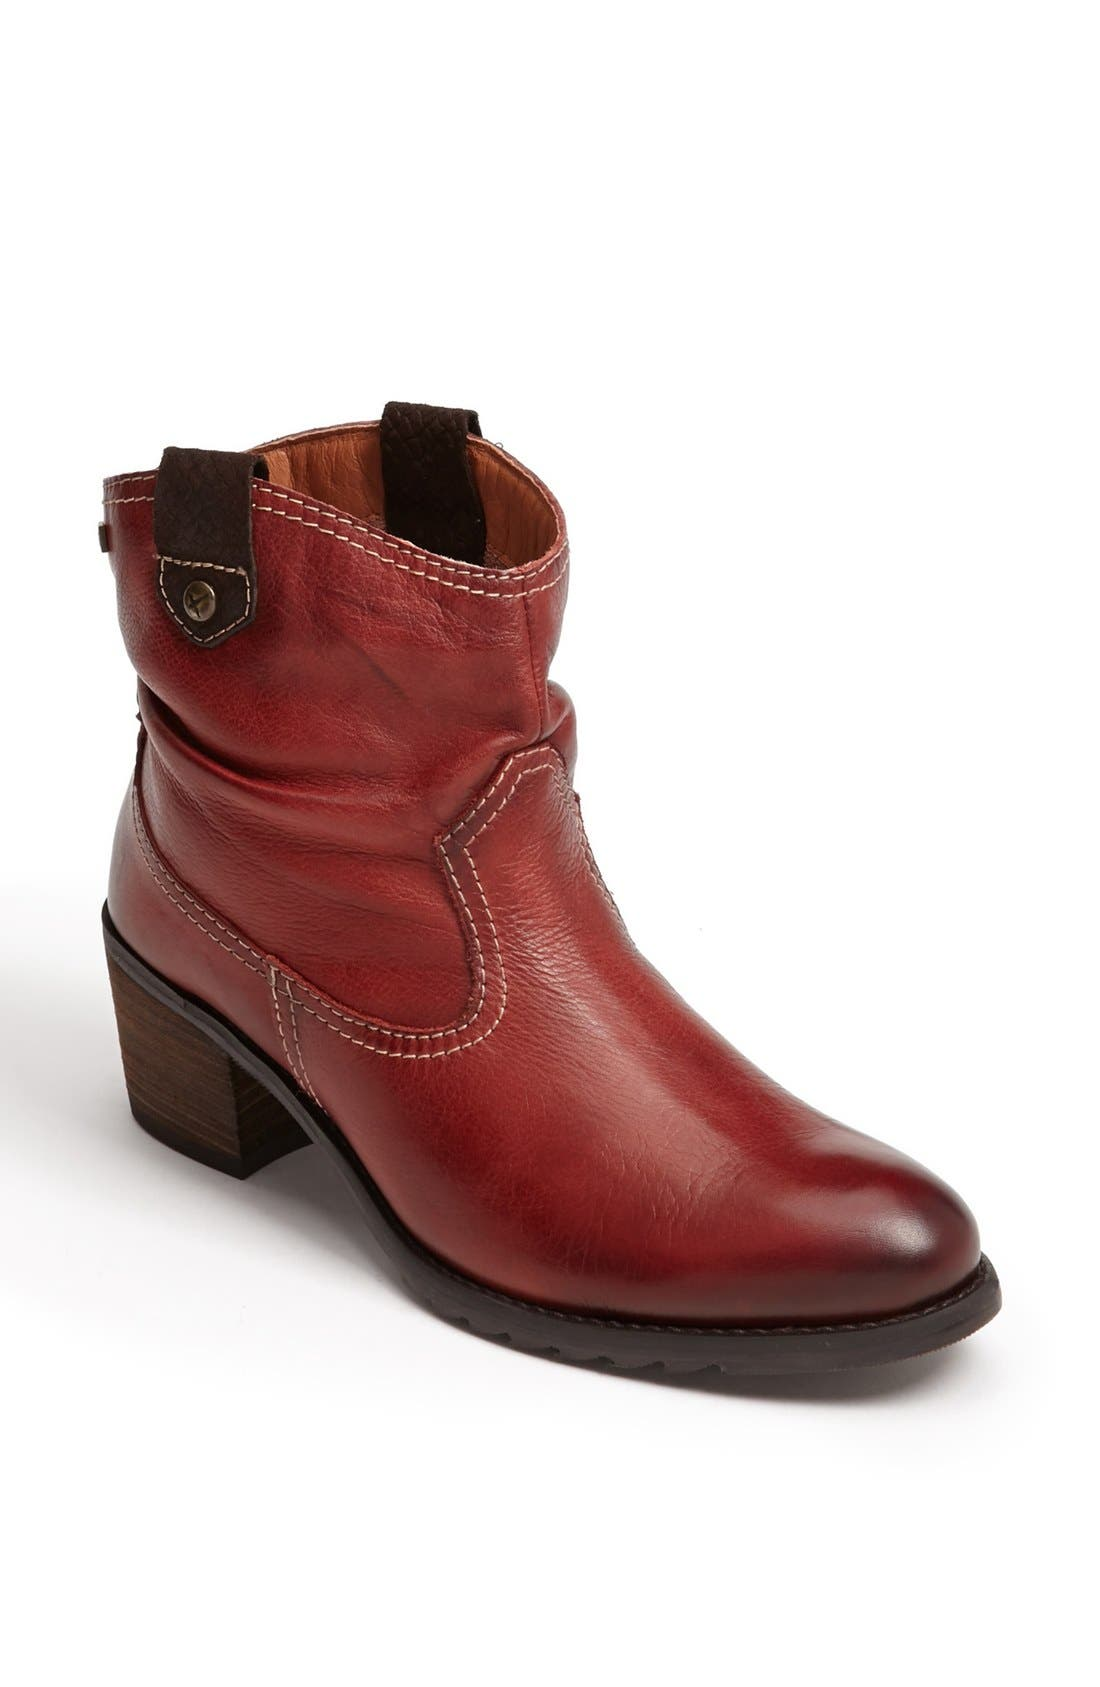 Alternate Image 1 Selected - PIKOLINOS 'Andorra' Western Bootie